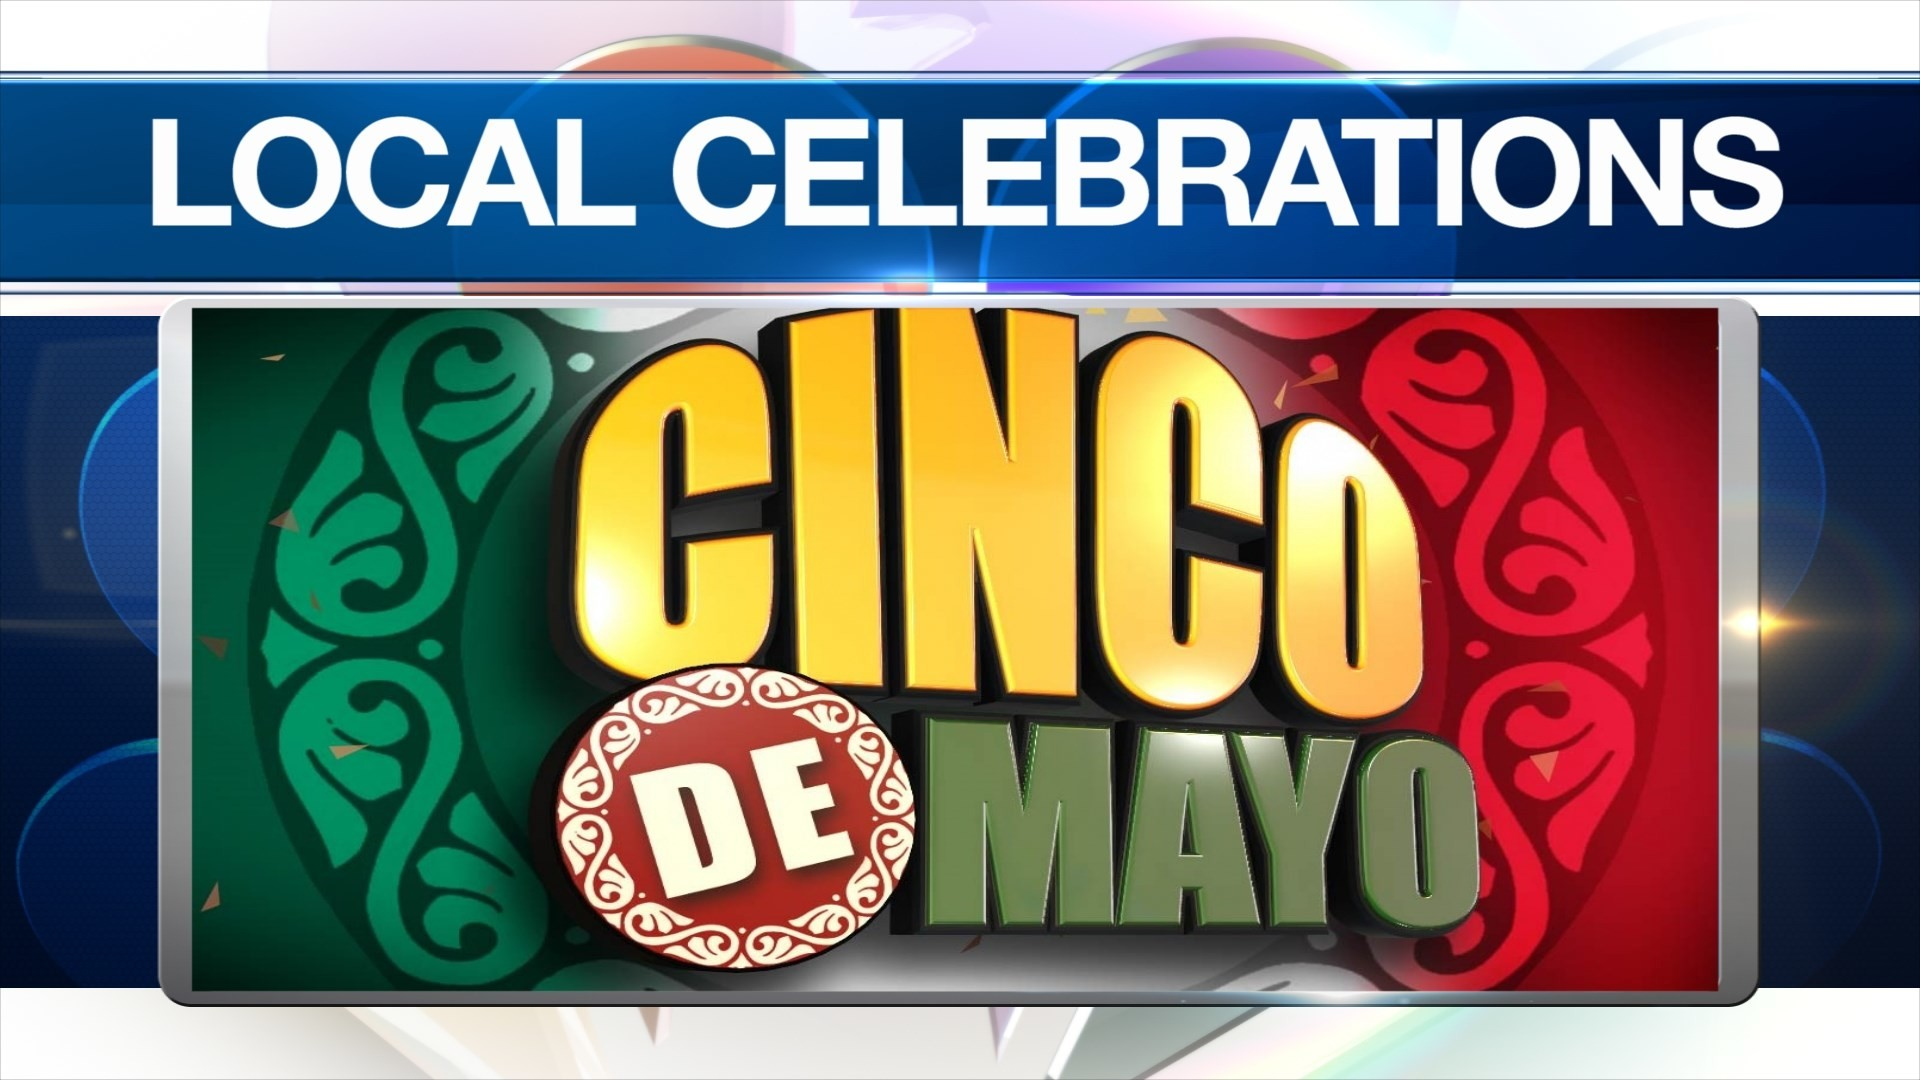 1920x1080 Thursday May 5th marked the 154th anniversary of Cinco de Mayo - a  bi-cultural celebration that has become synonymous with margaritas, beer,  ...